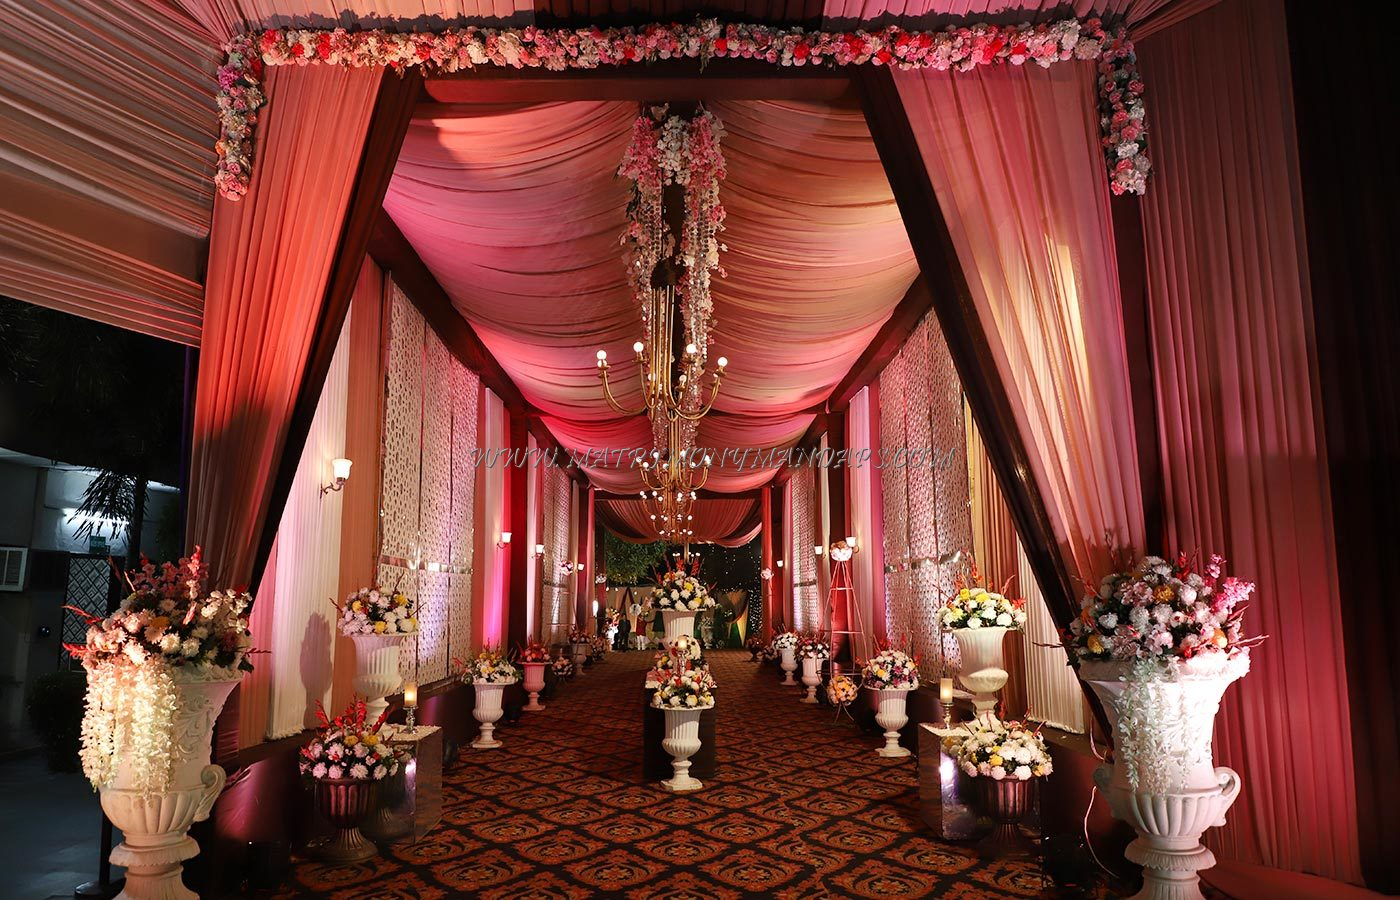 Find More Banquet Halls in Chattarpur